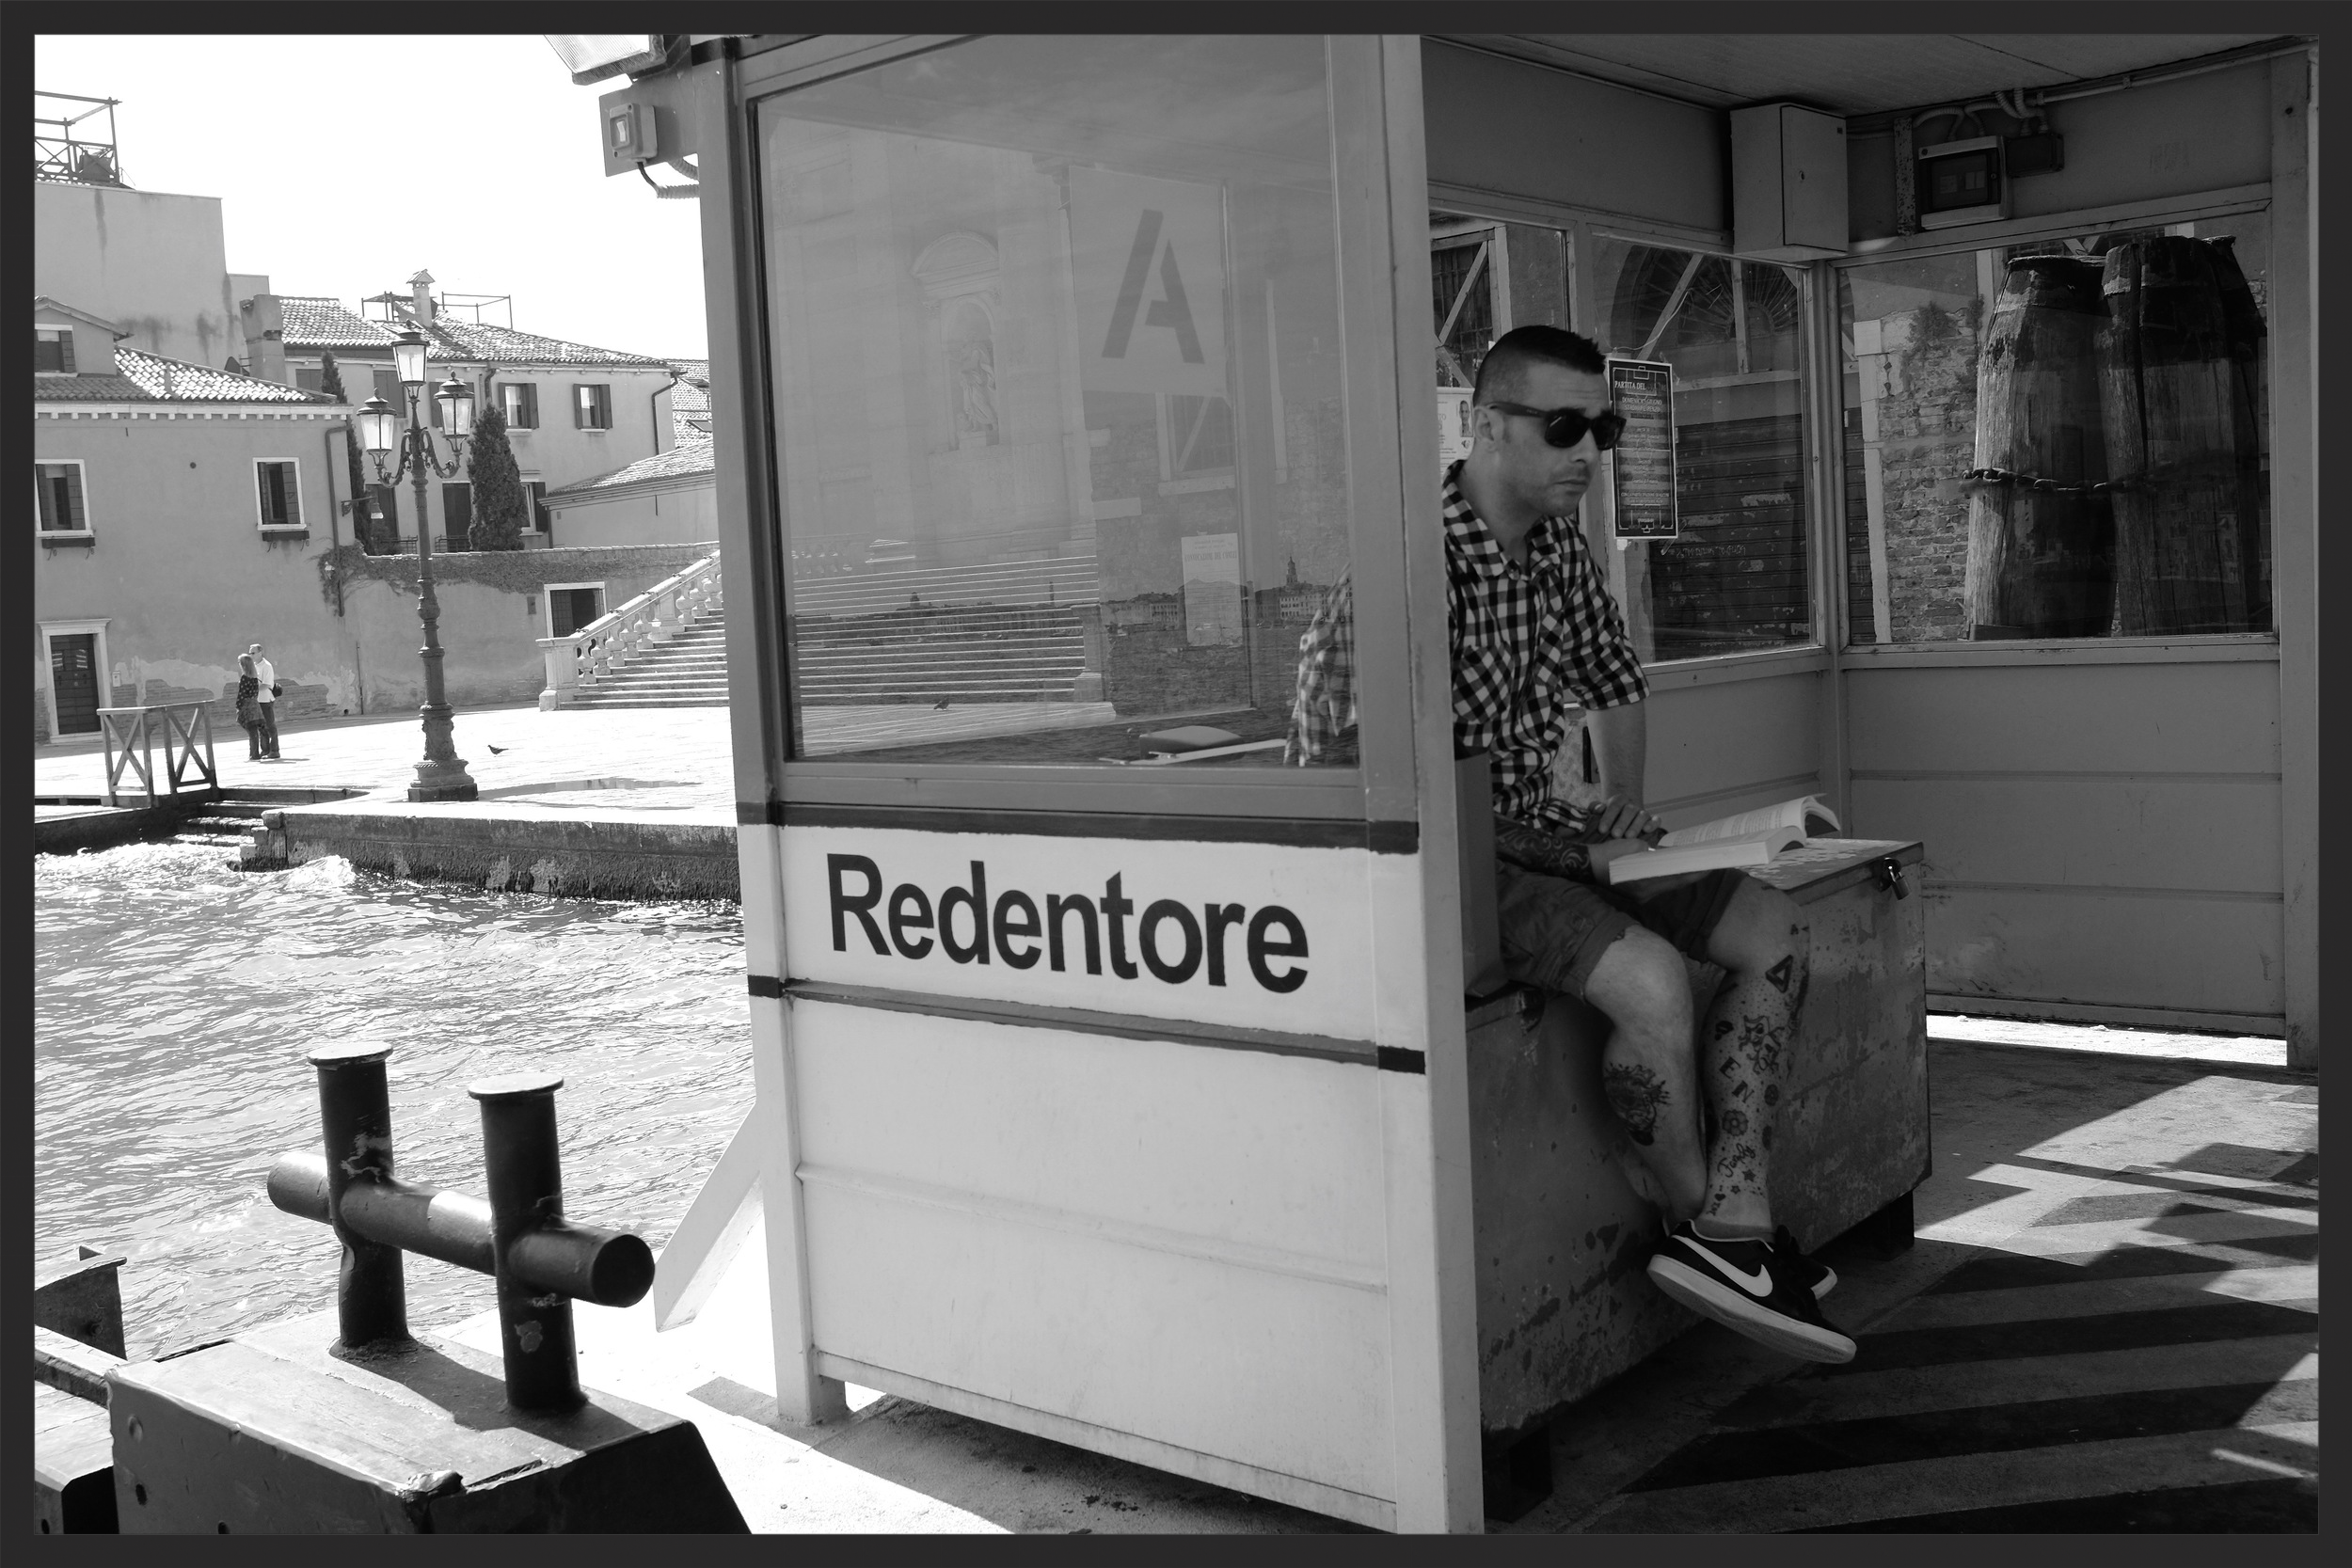 Waiting at the Redentore vaporetto stop.